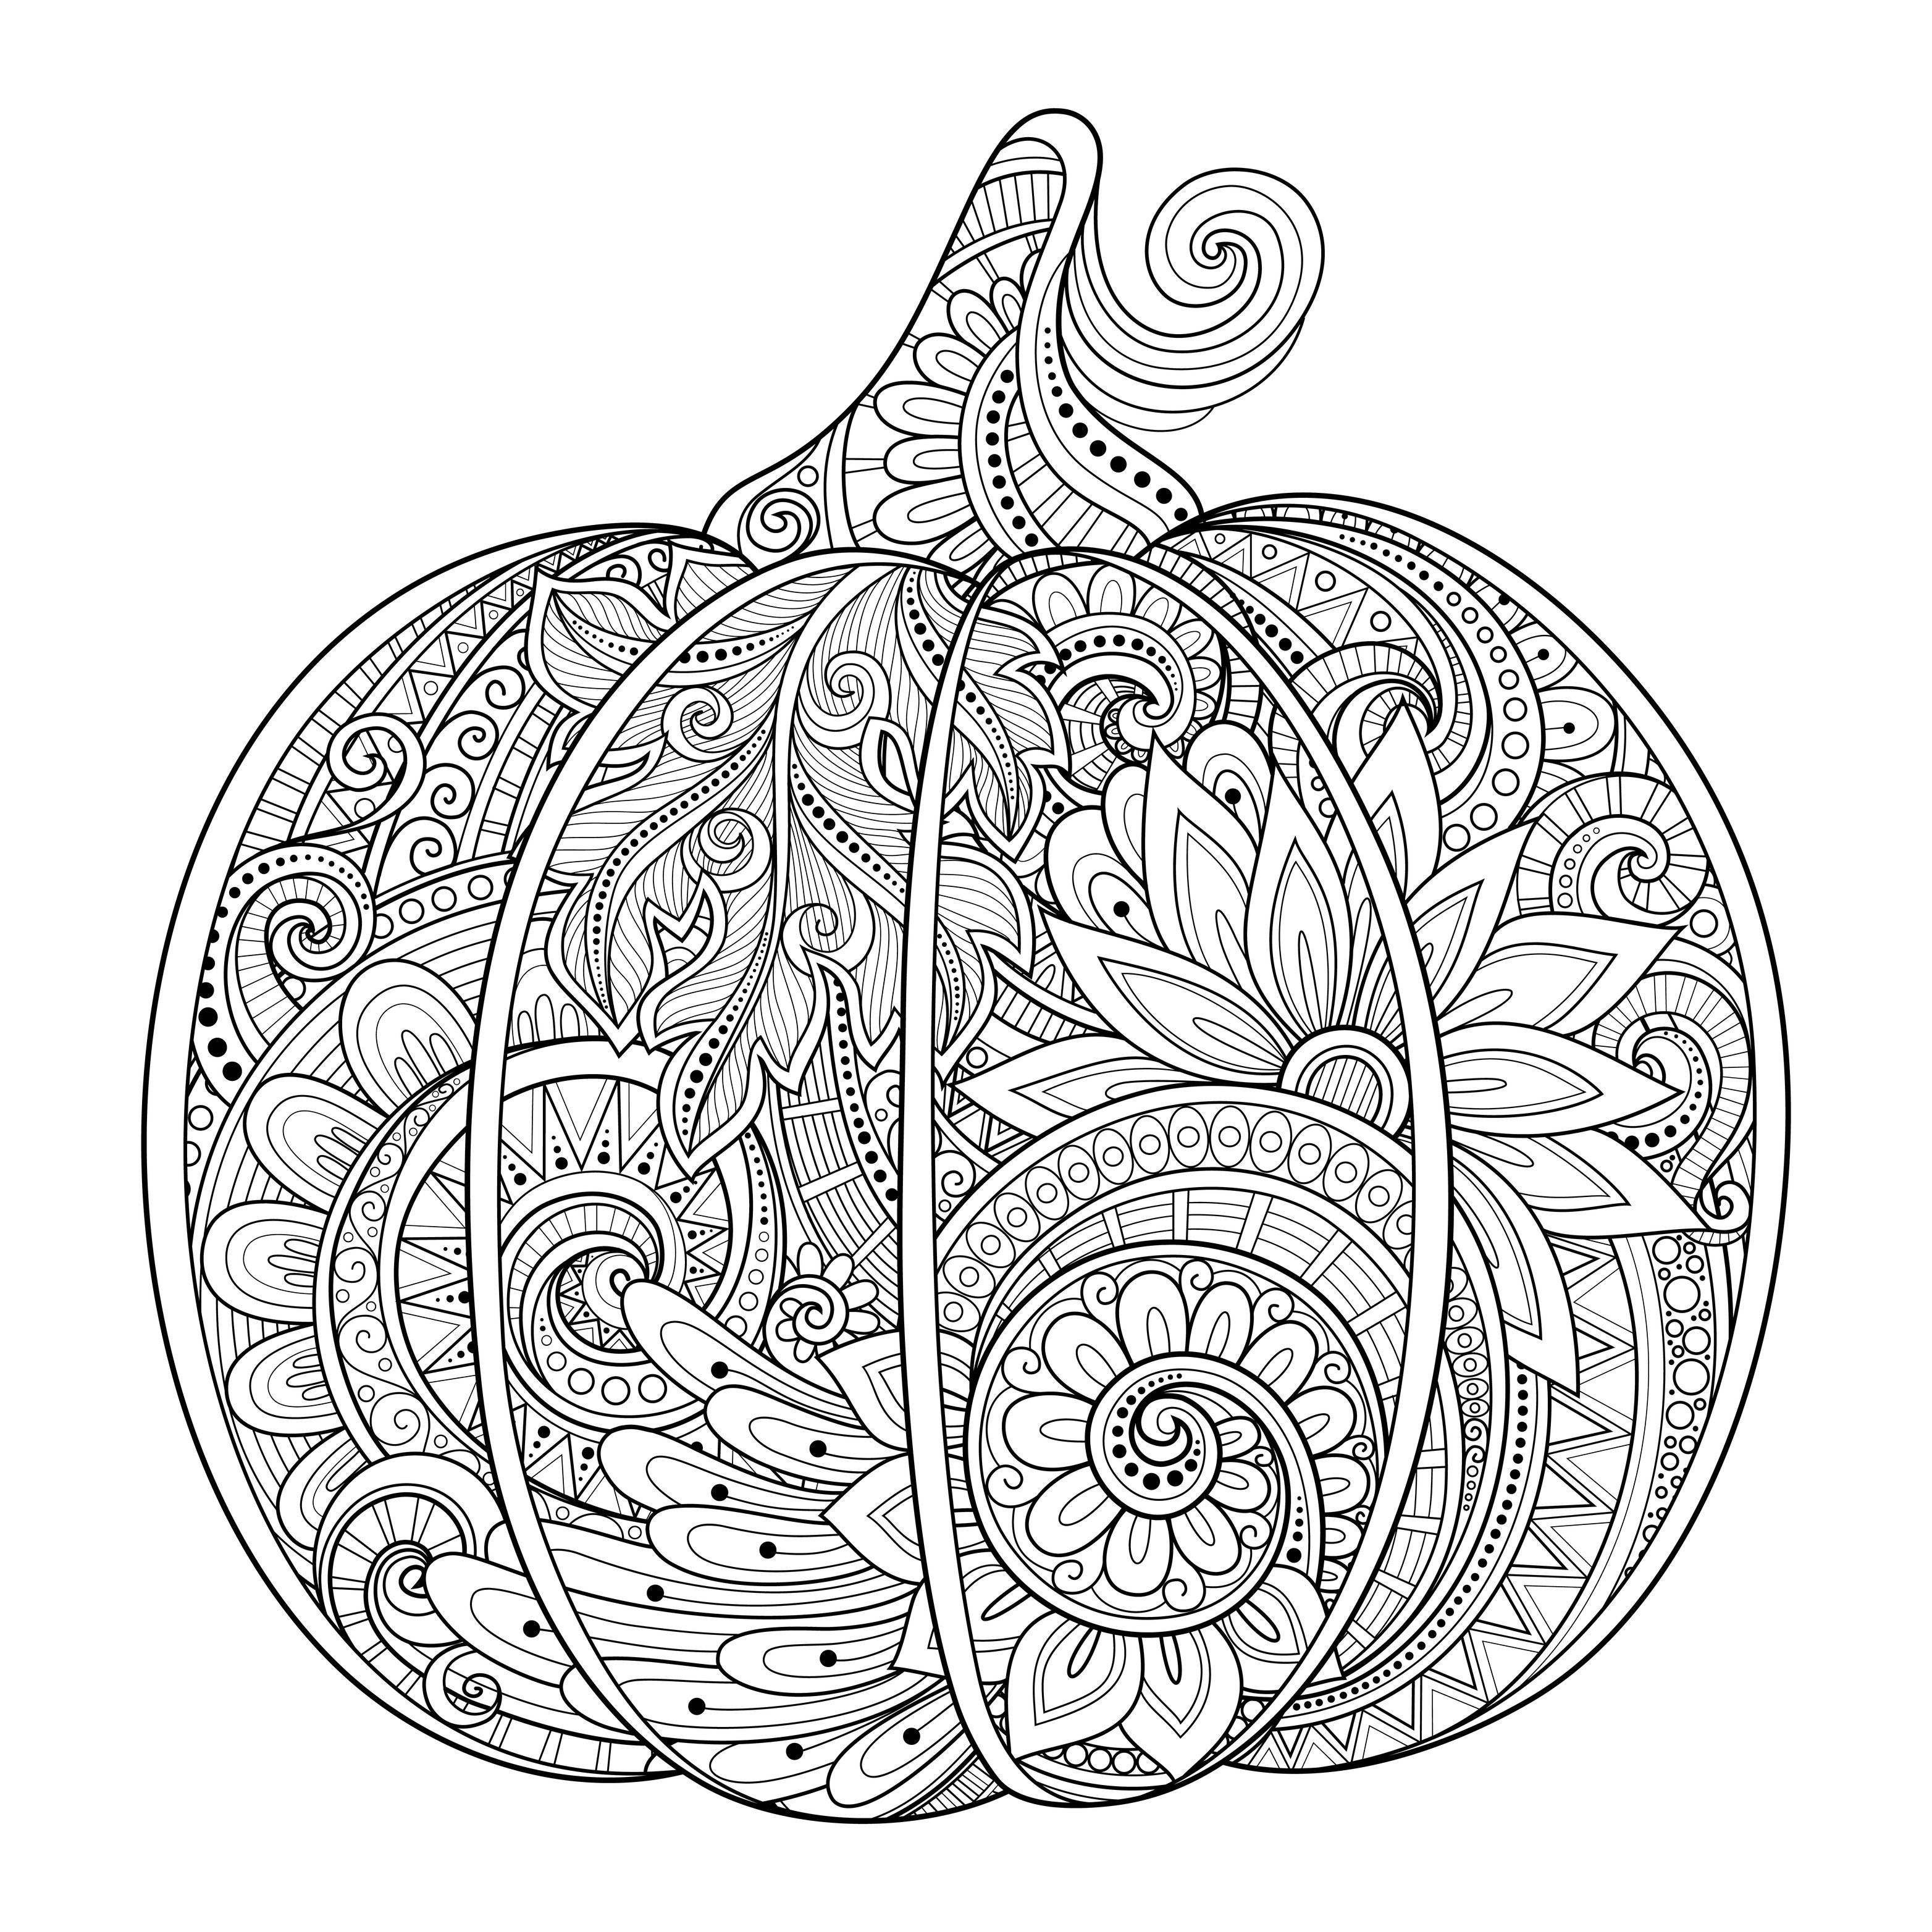 Coloring pages for adults for free - Halloween Pumpkin Zentangle Source 123rf Irinarivoruchko Zentangle Coloring Pages For Adults Justcolor